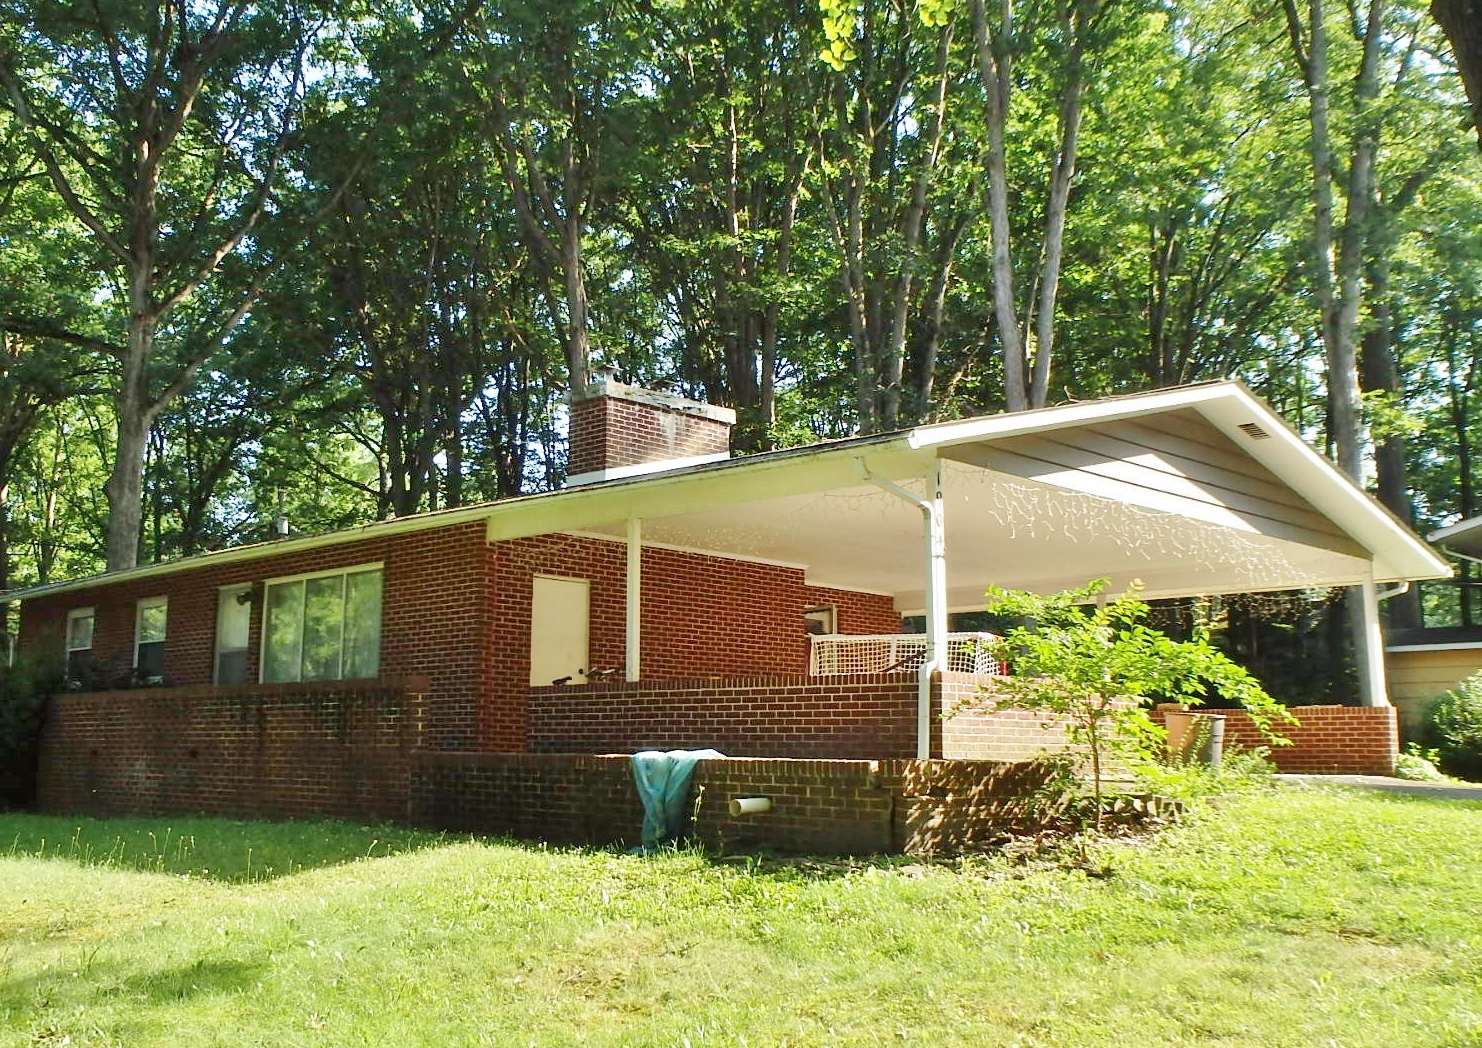 Featured photo of the 3-bedroom house for rent at 1904 N. Oak Lane, State College PA.